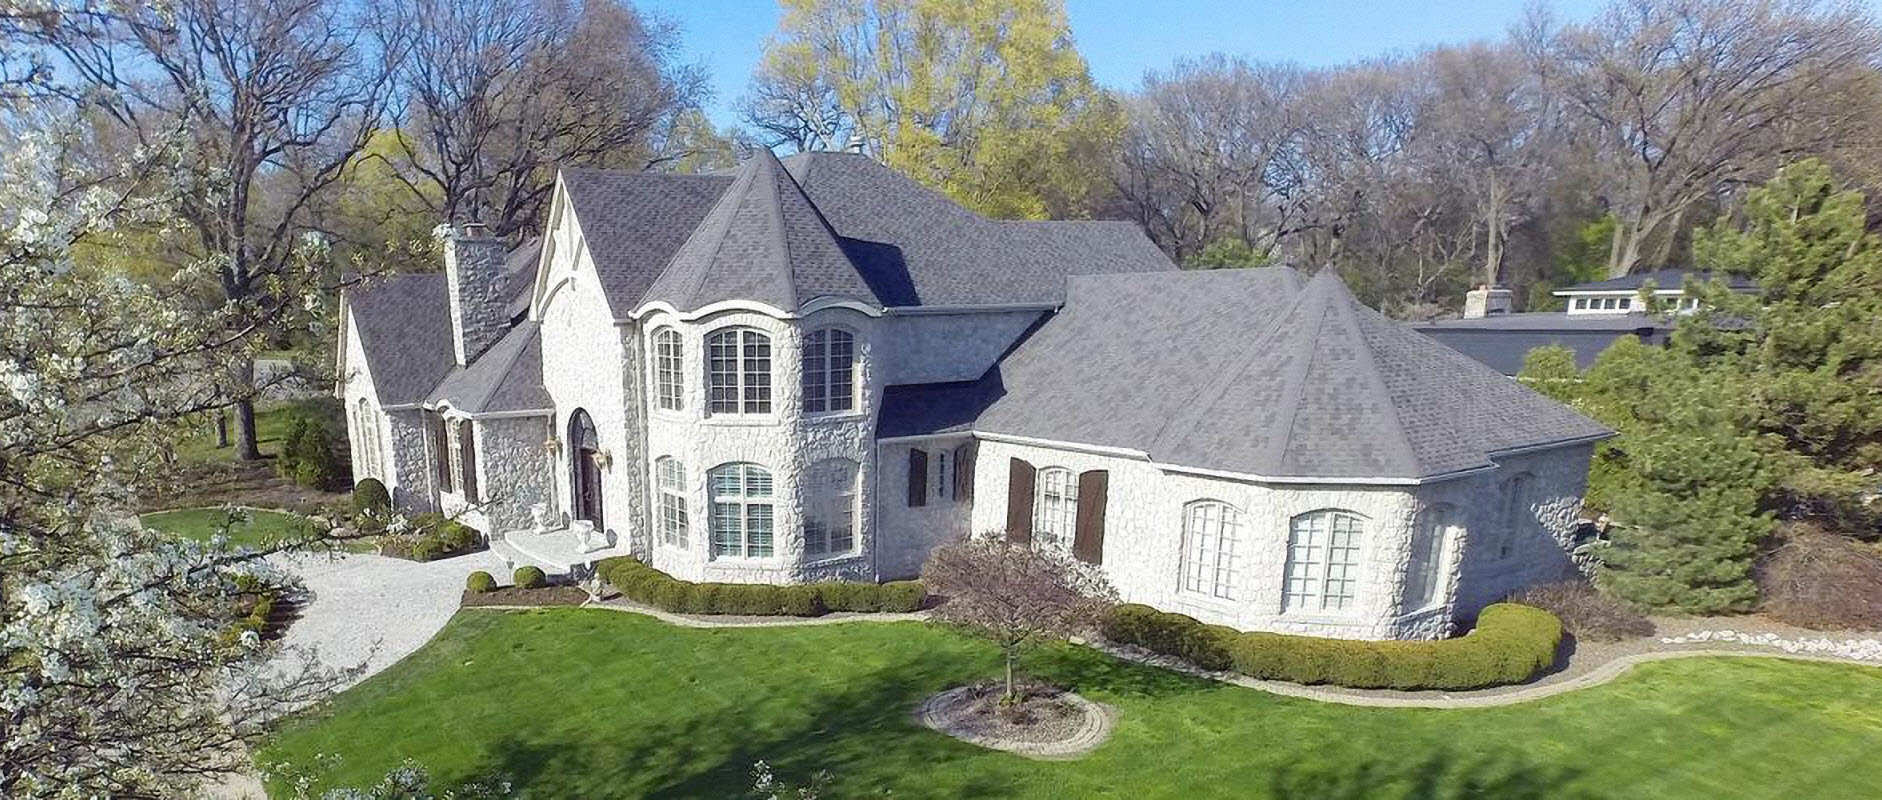 Houses for rent in griffith indiana house plan 2017 for House builders in indiana